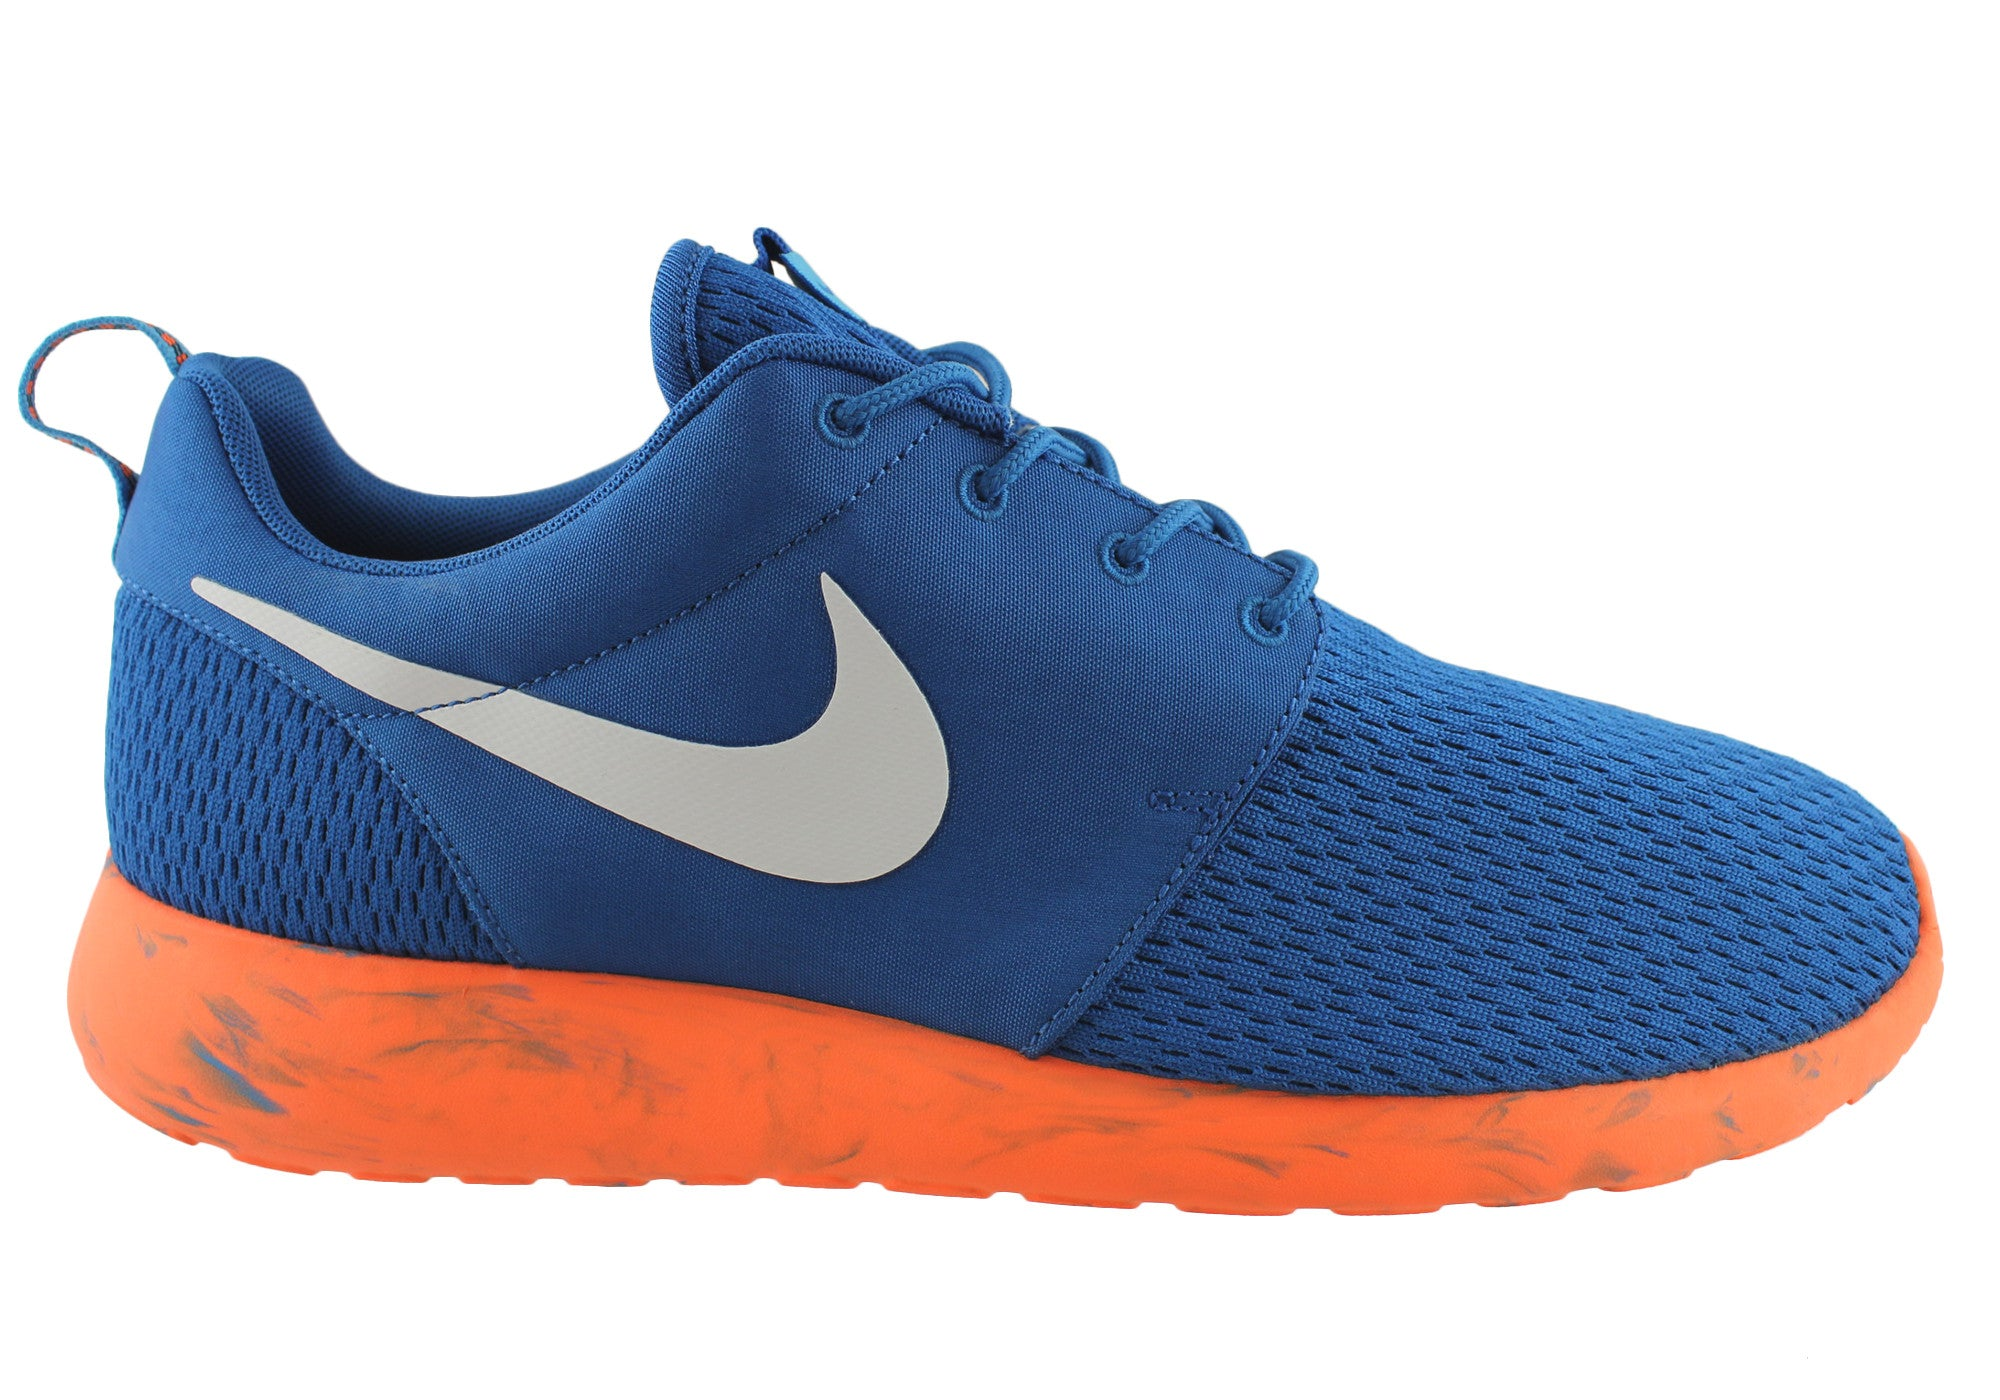 timeless design a67e8 99a0f Home Nike Roshe Run Mens Lightweight Running Casual Shoes. Blue  ...